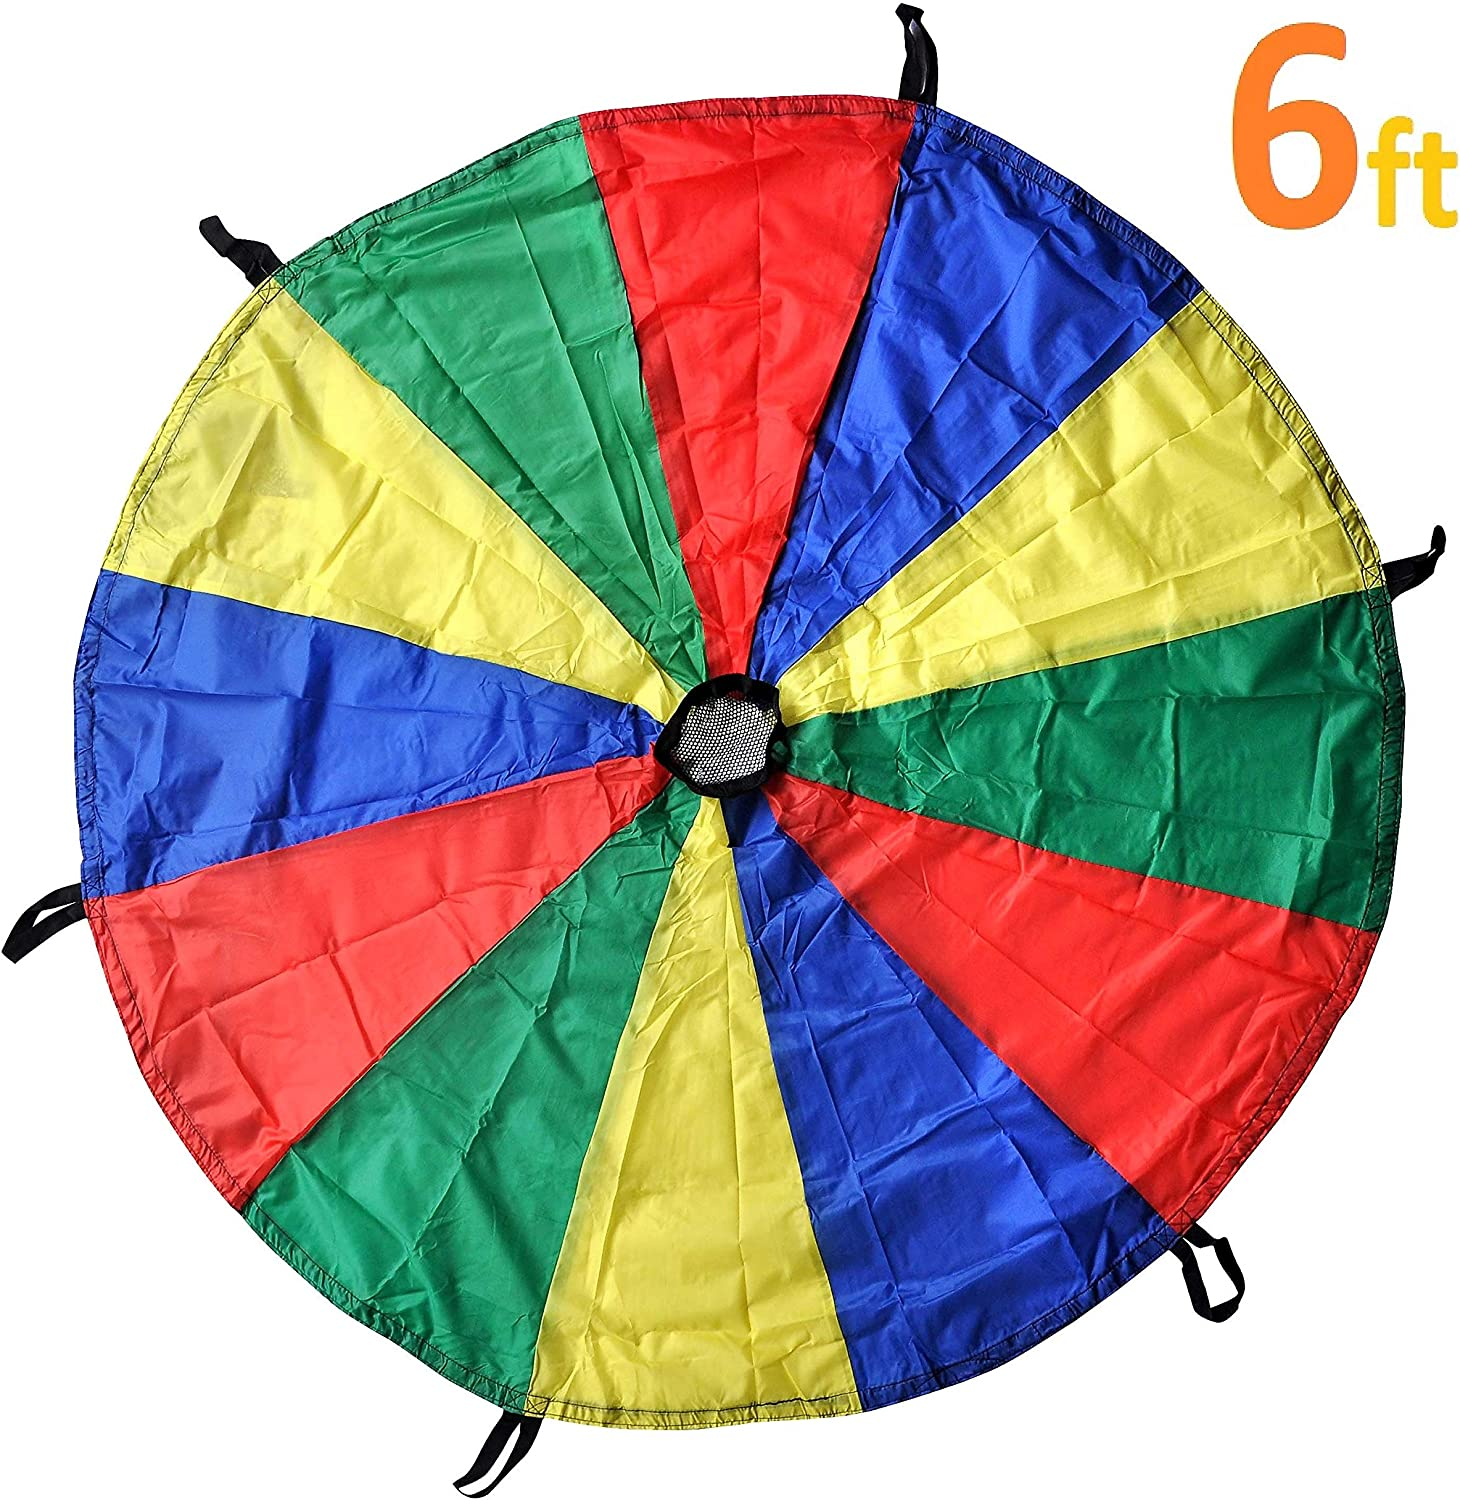 GSI Kids Play Parachute for Cooperative Play and Upper Body Strength Training (6 Feet 6 Handles)